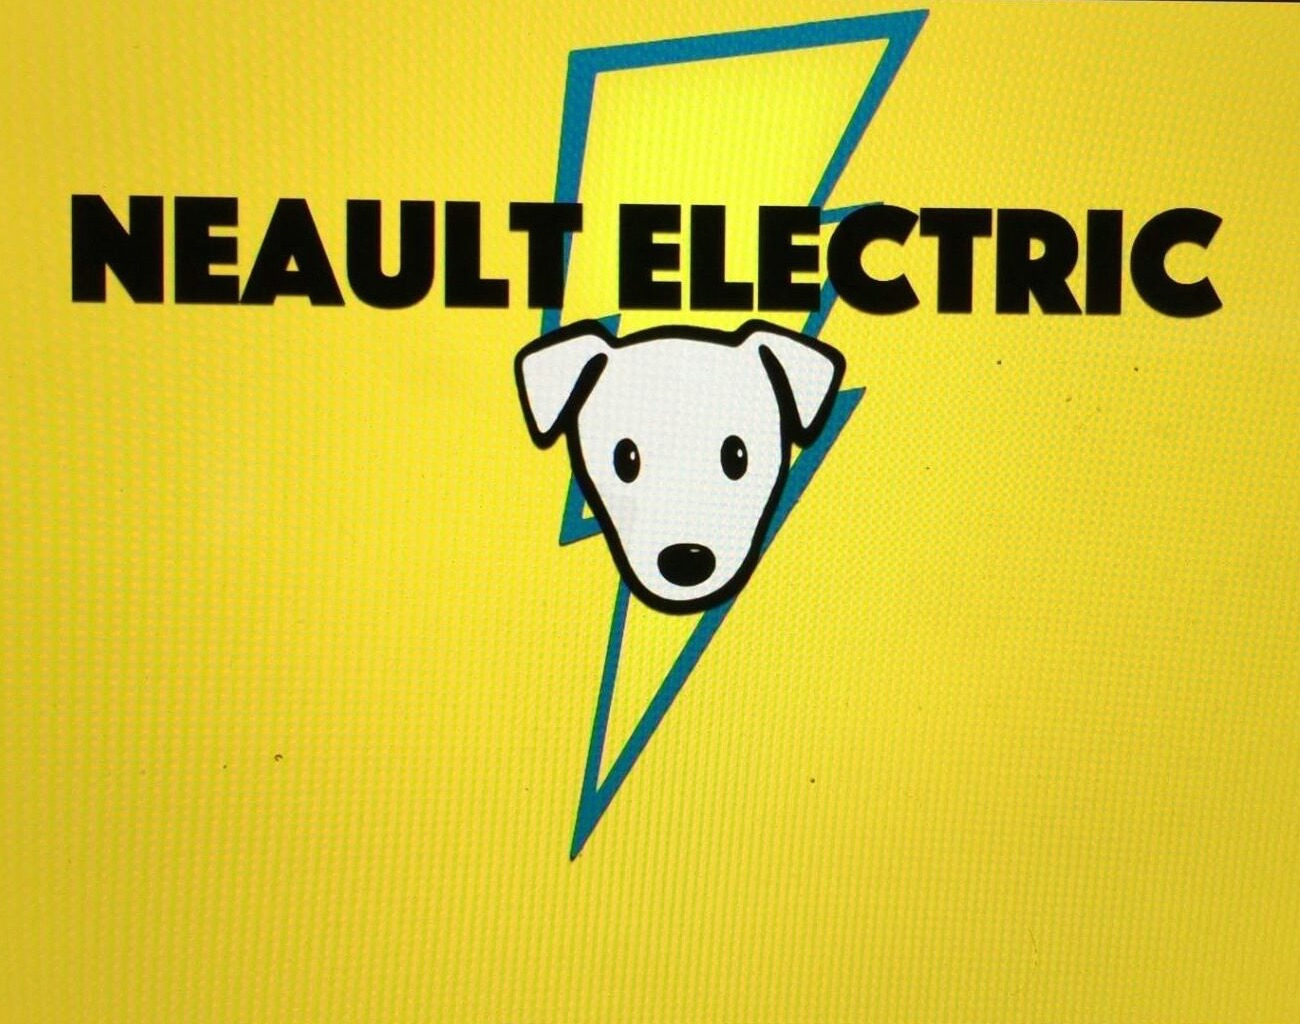 Neault electric logo